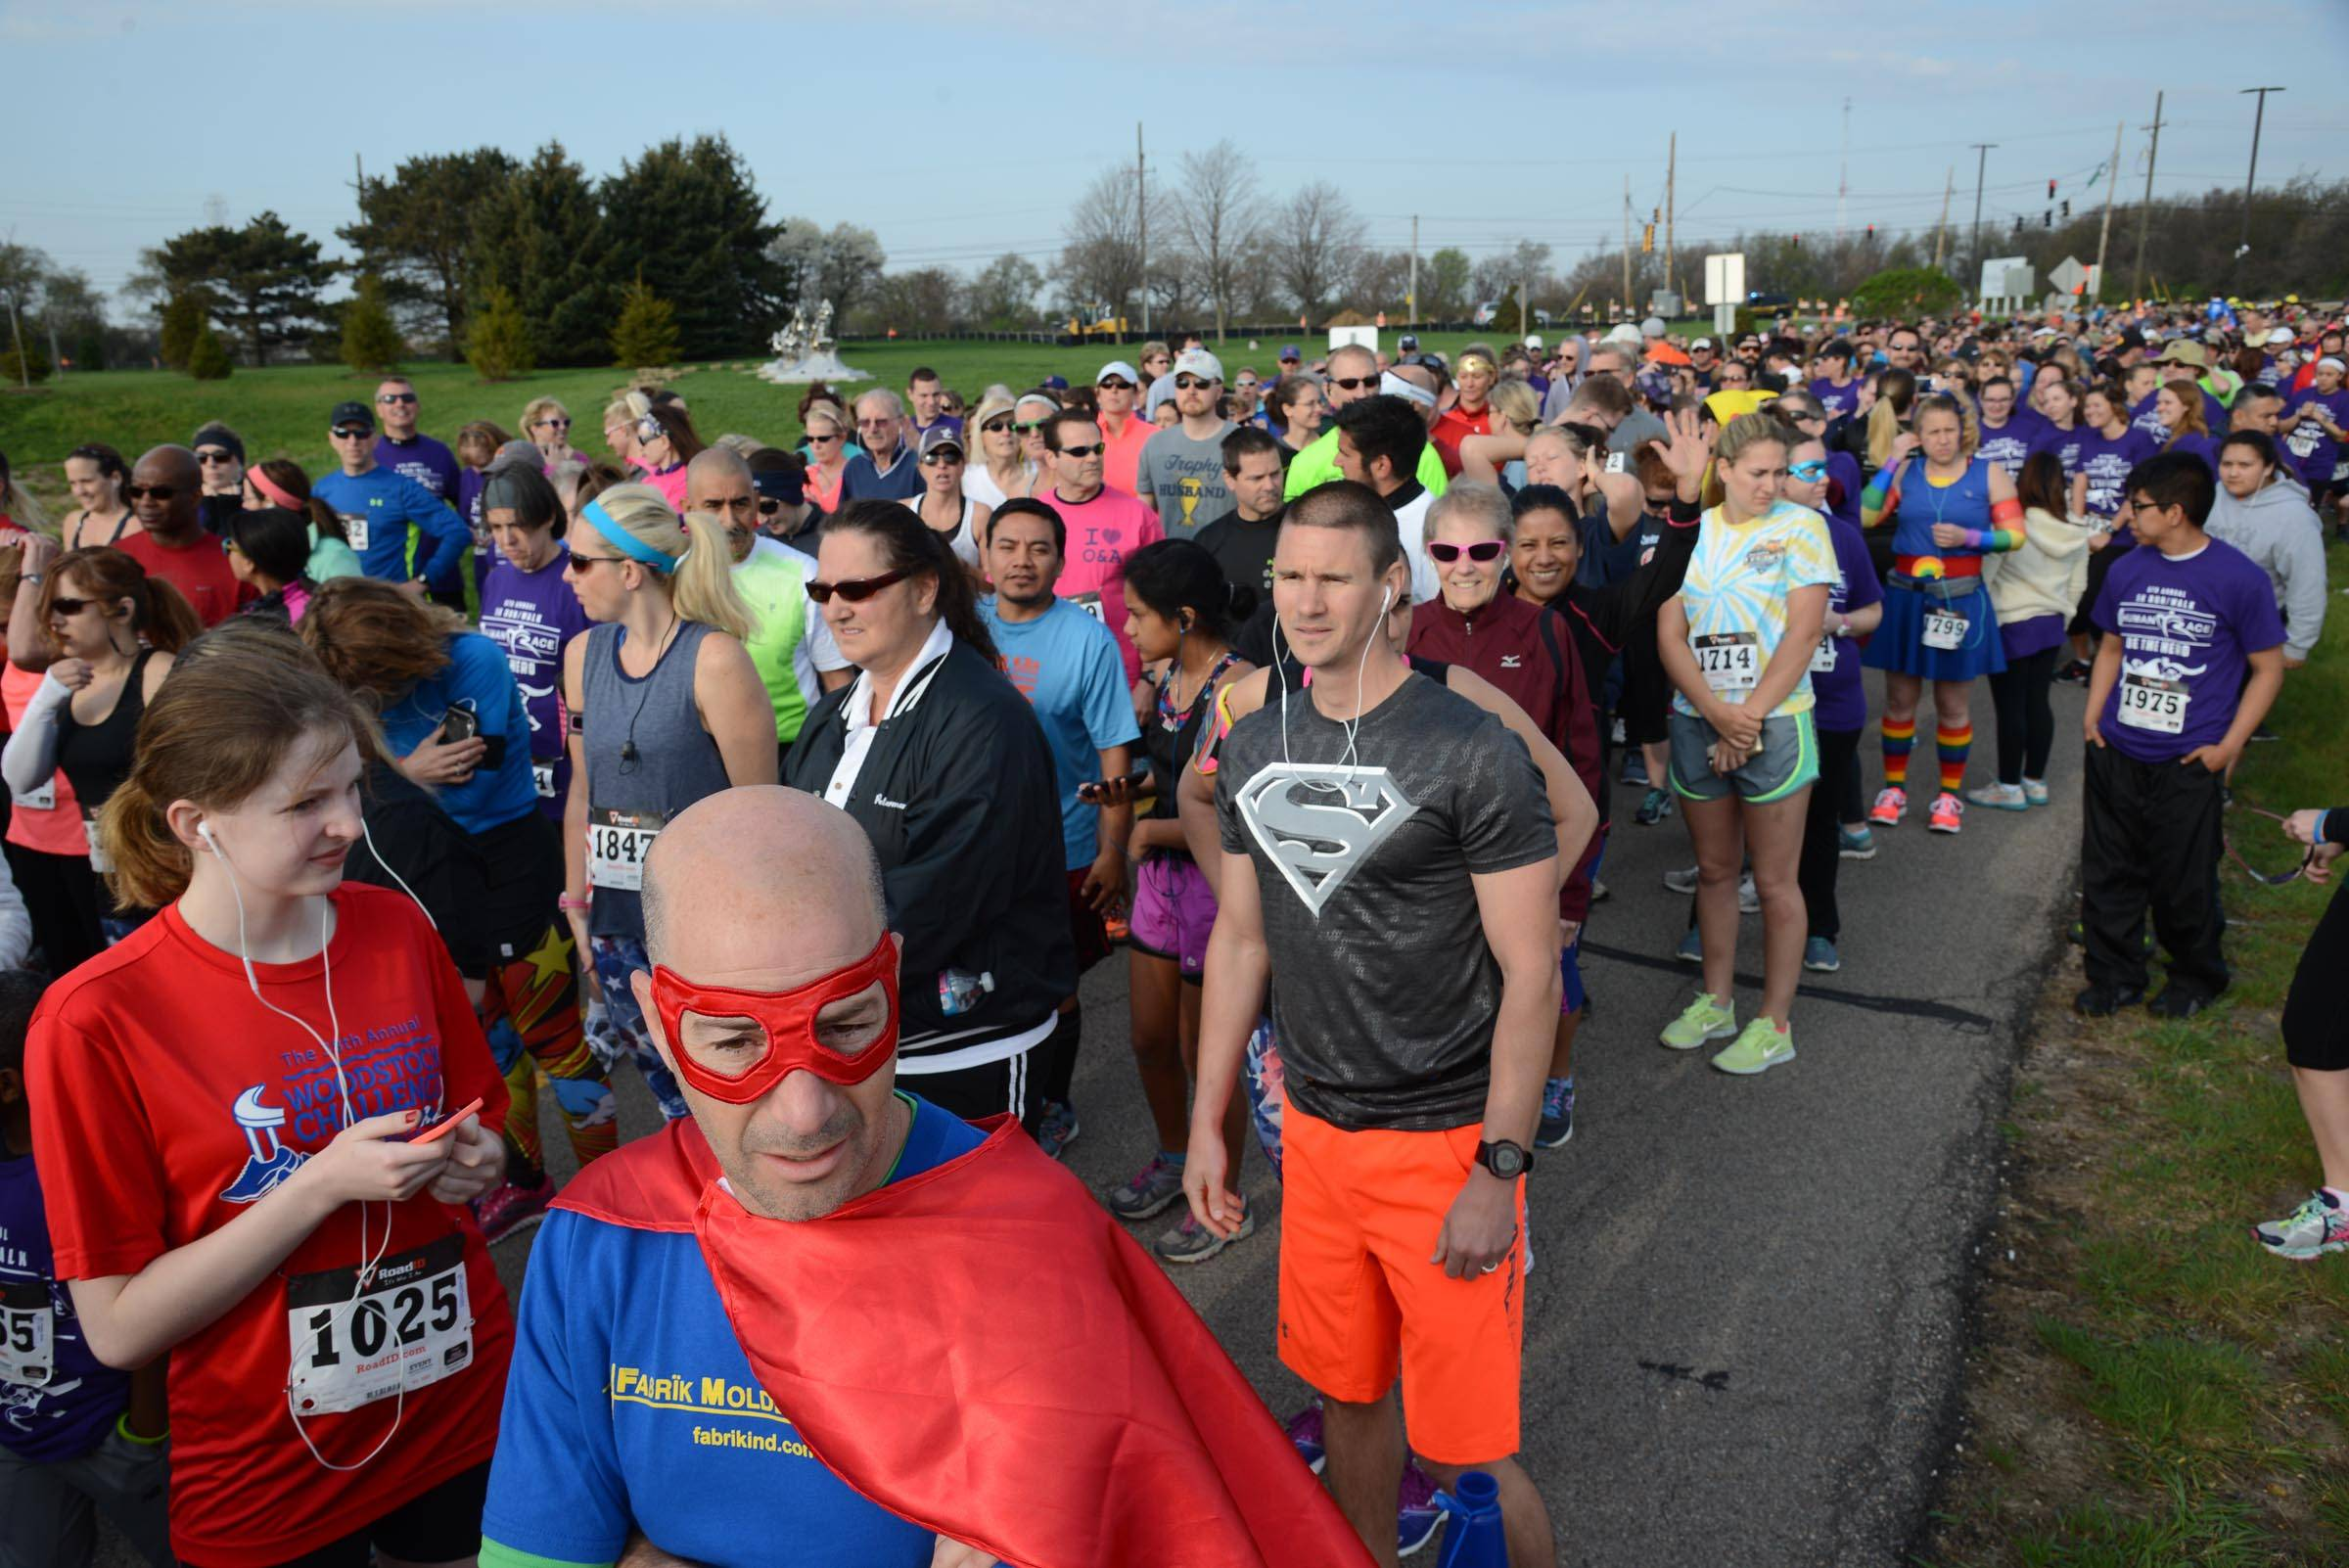 Many of the thousands who walked and ran Sunday in the McHenry County Human Race 5K in Crystal Lake came dressed as superheroes. Participants chose from among 67 charities their registration fee would benefit.